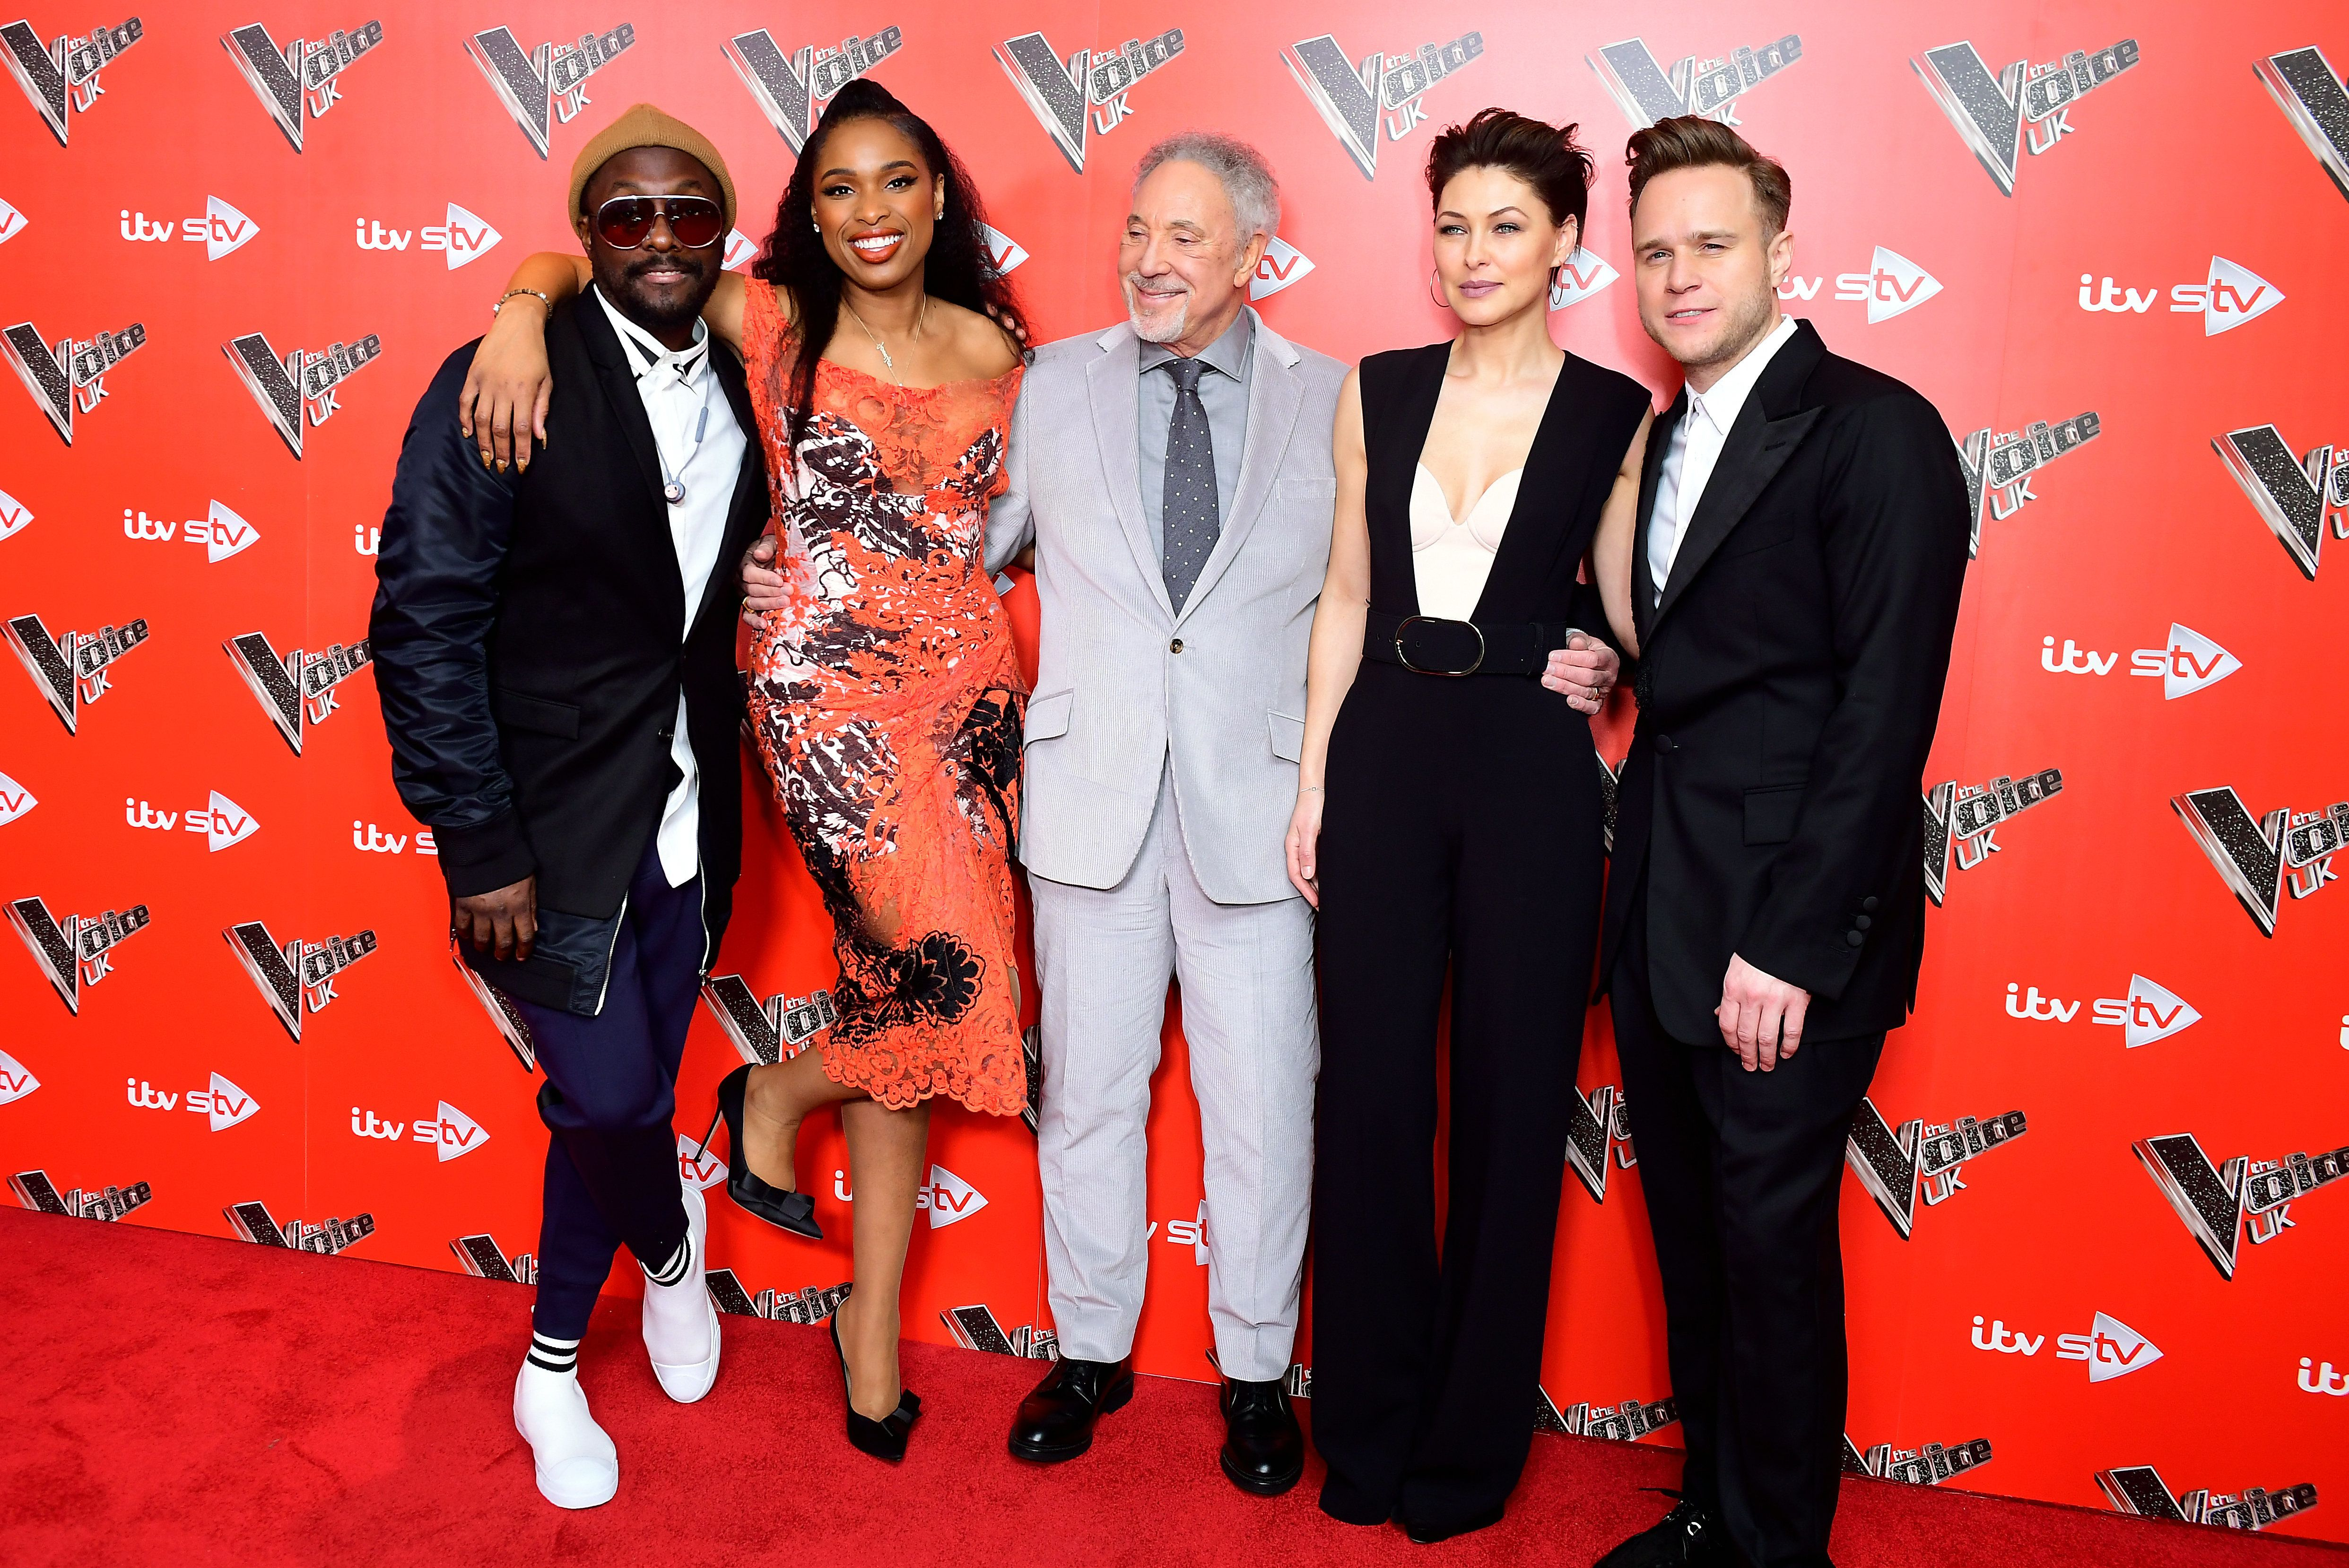 Emma Willis And Will.i.am Attempt To Defend Why 'The Voice' Is Yet To Find A